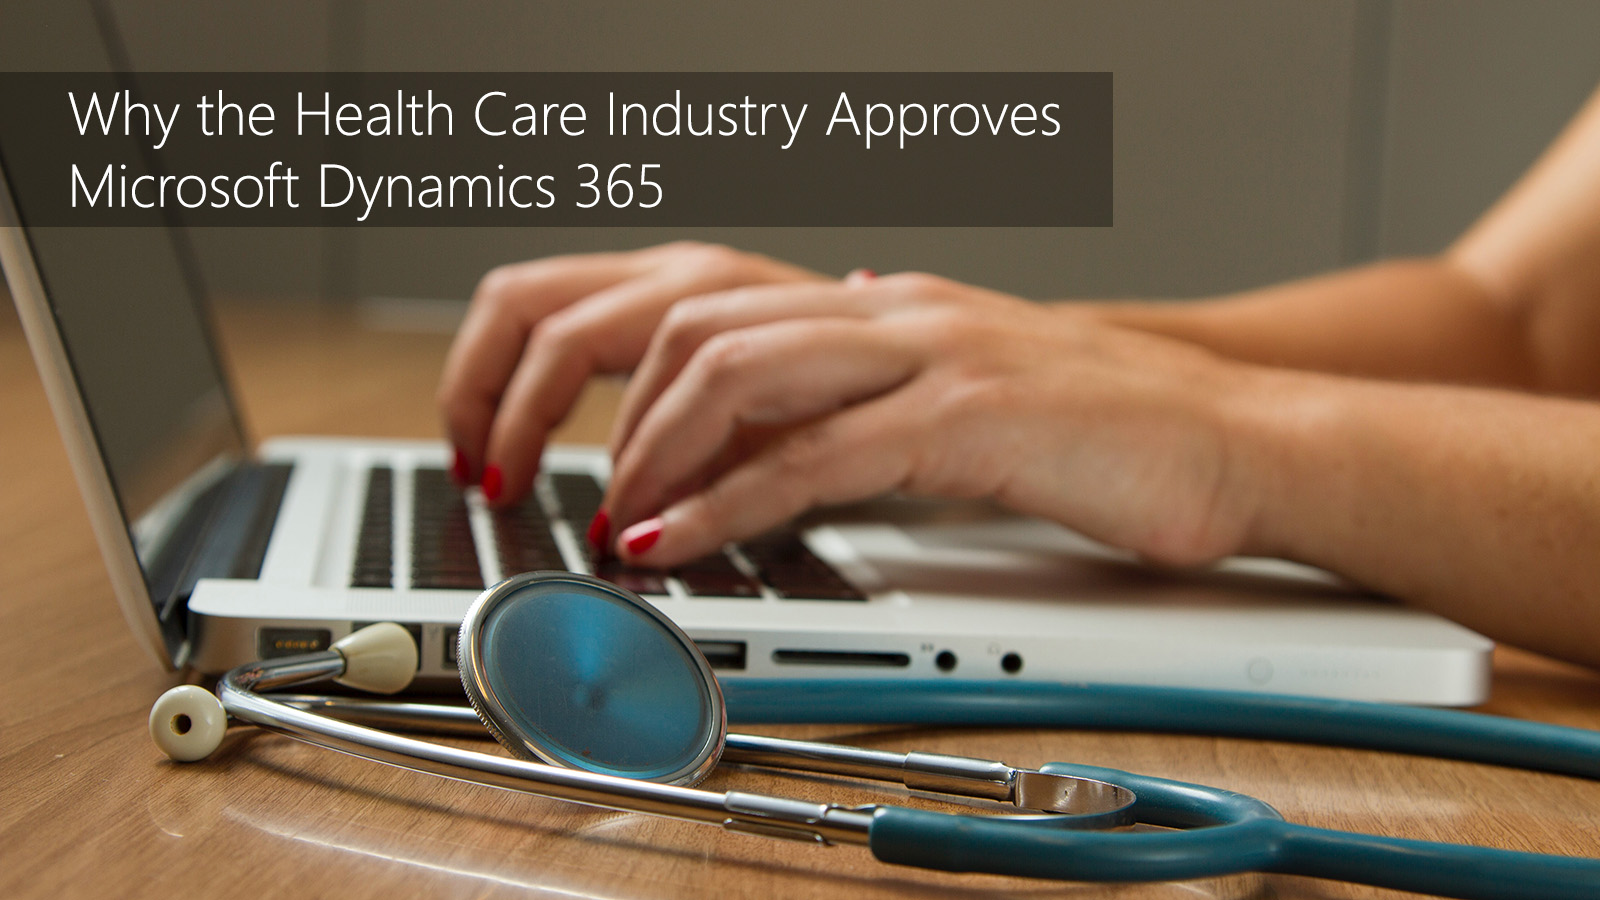 Why the Health Care Industry Approves Microsoft Dynamics 365